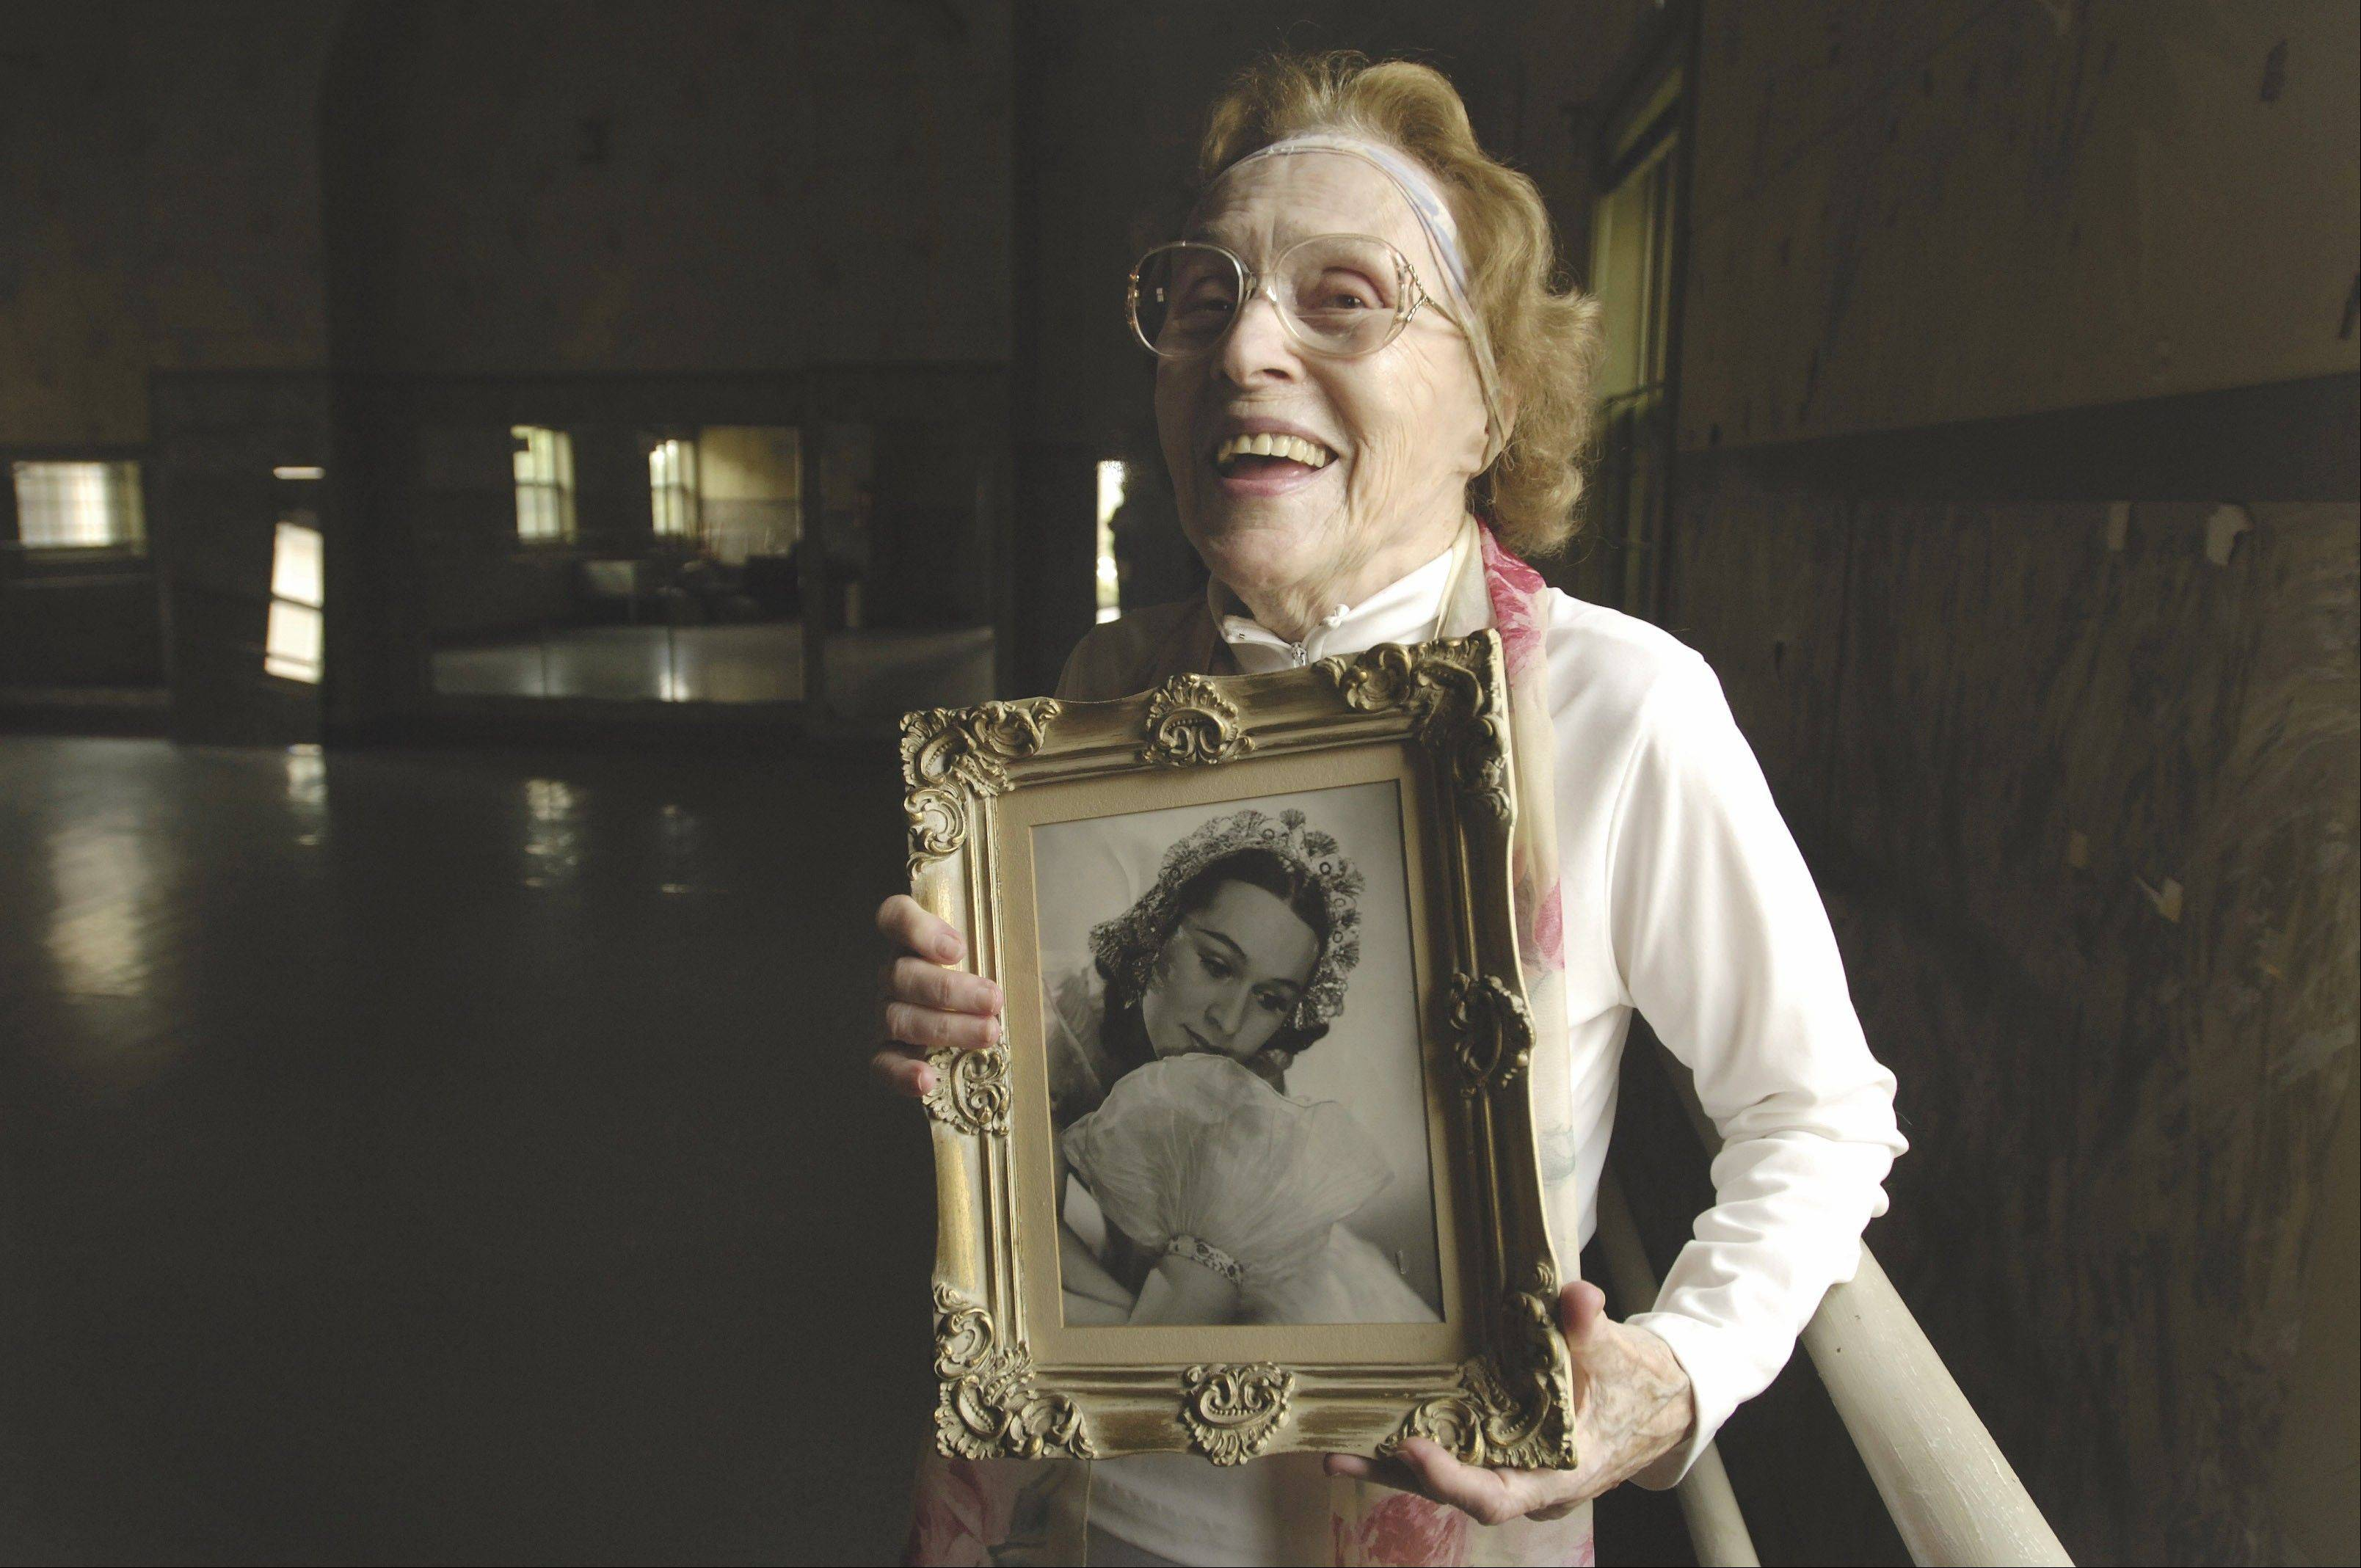 Lisa Boehm holds a portrait of herself when she was a young ballerina in this 2005 photo.